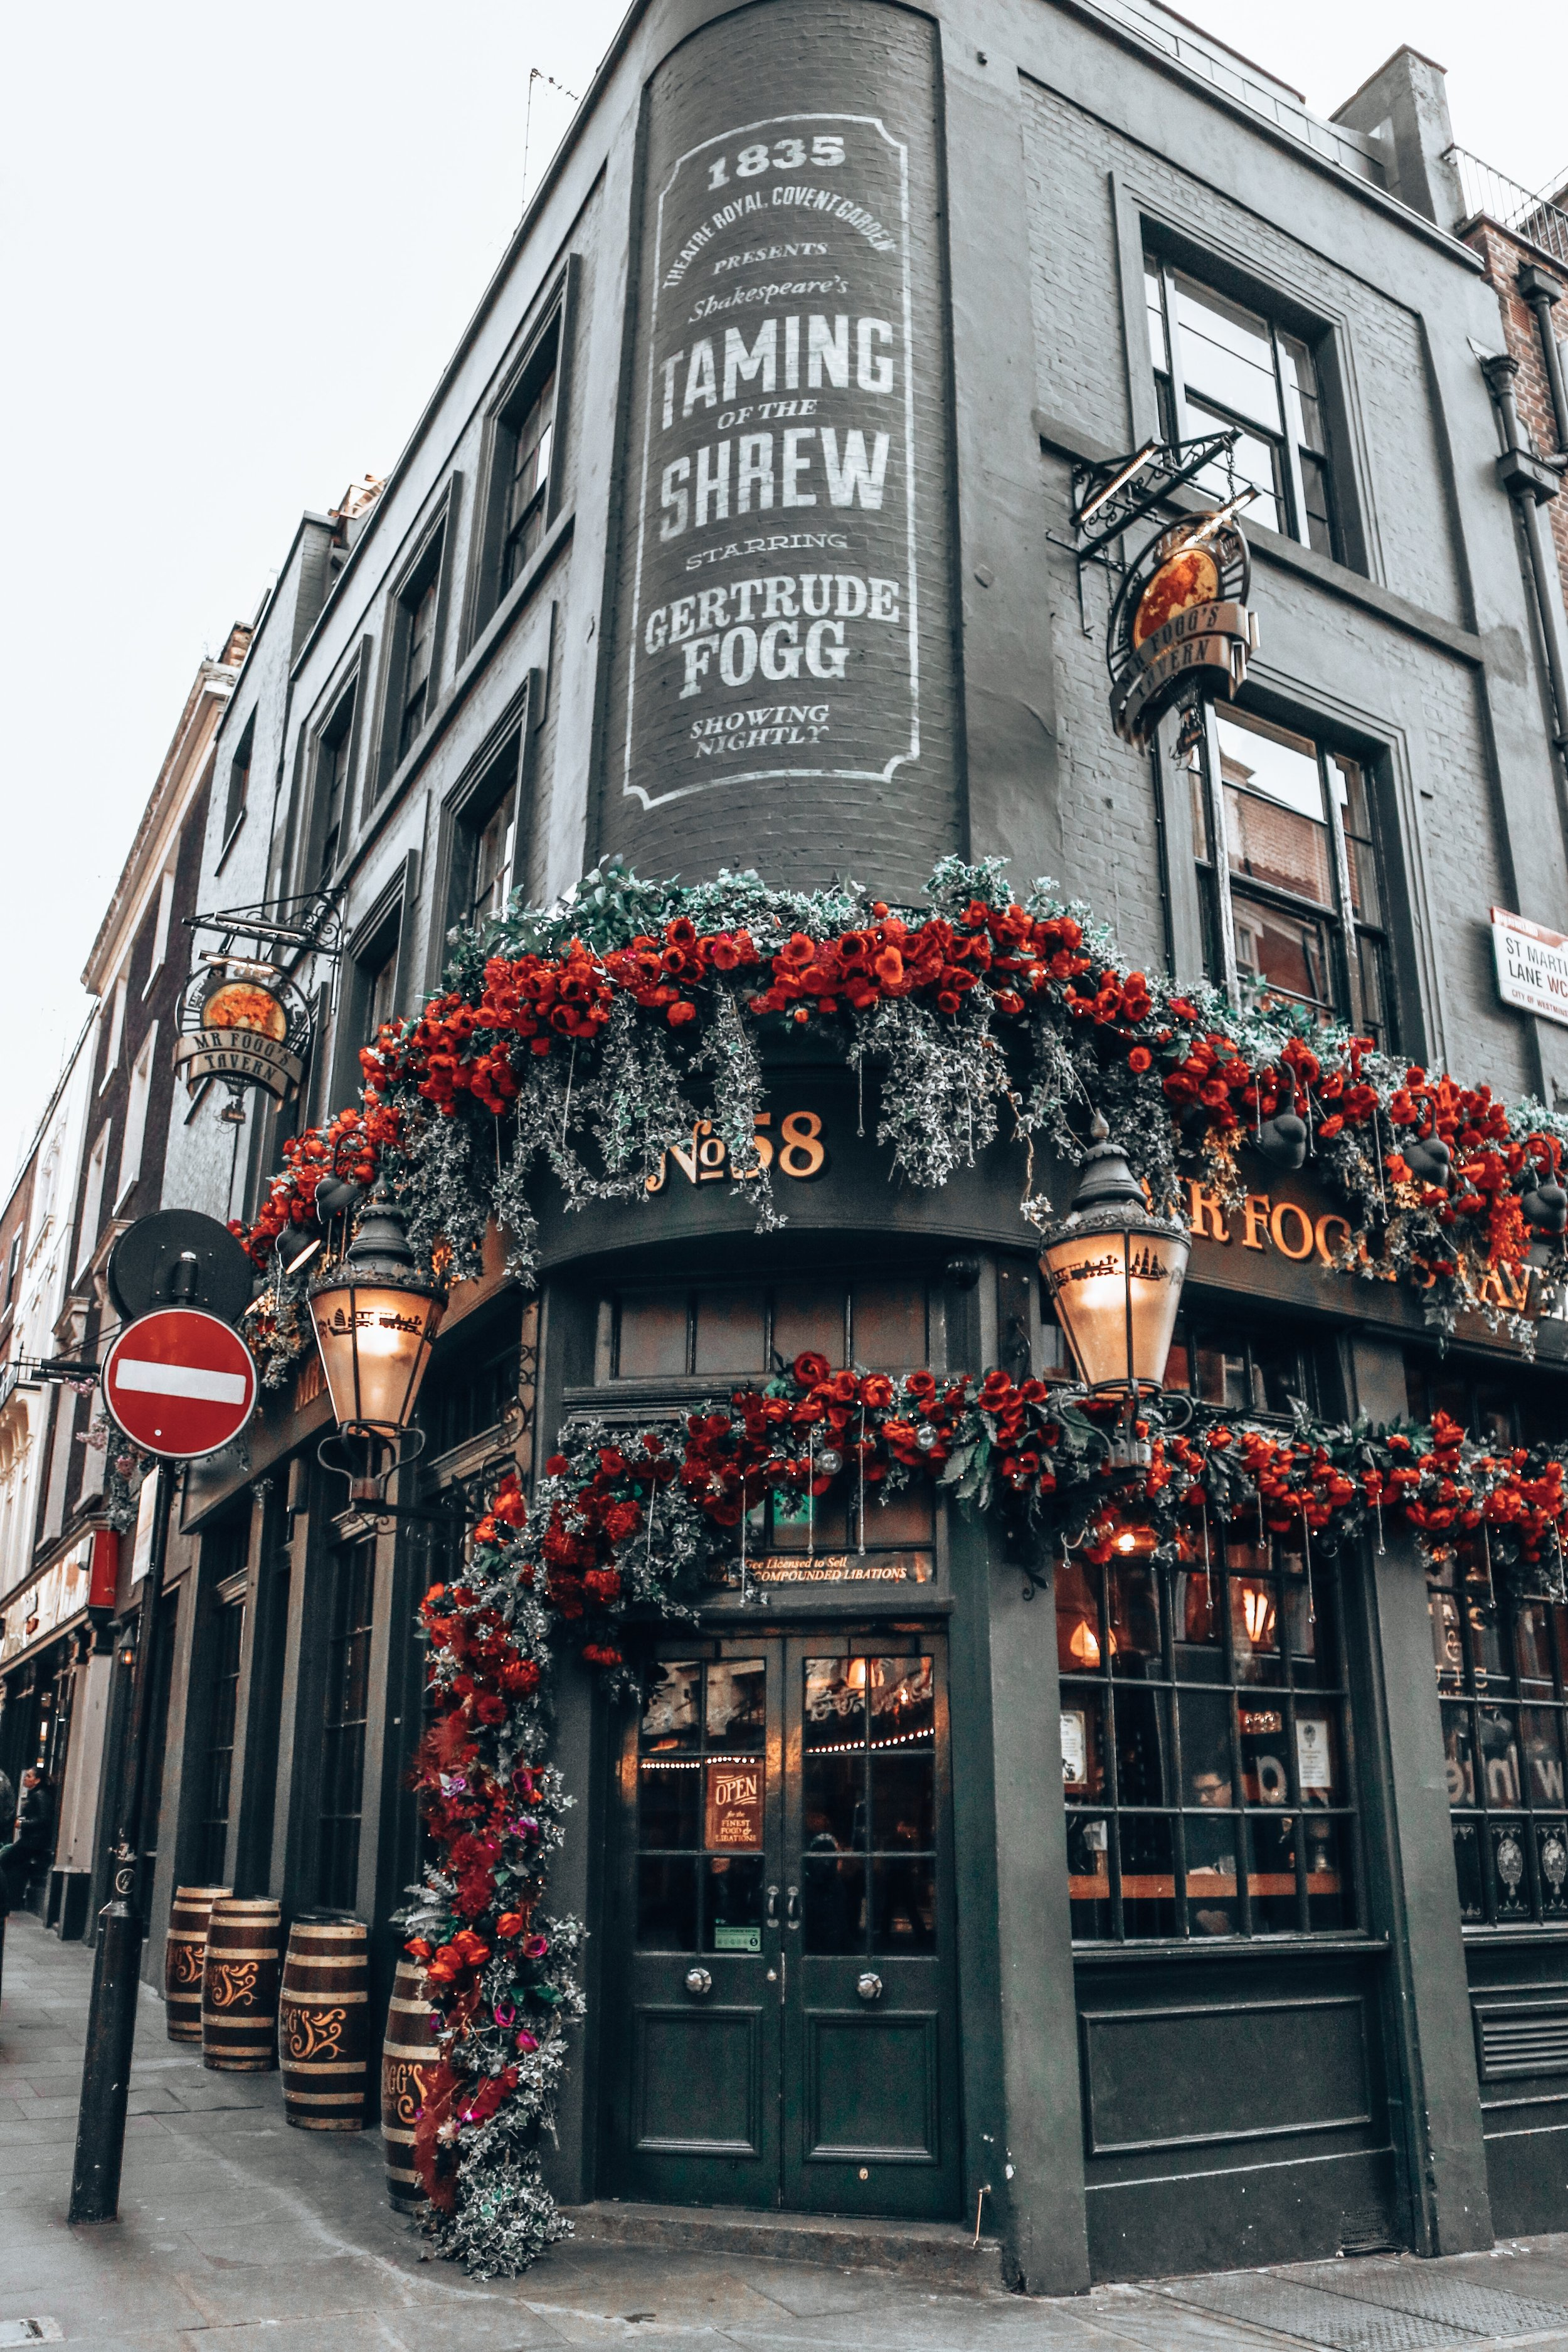 Covent Garden in London Mr. Fog's Tavern